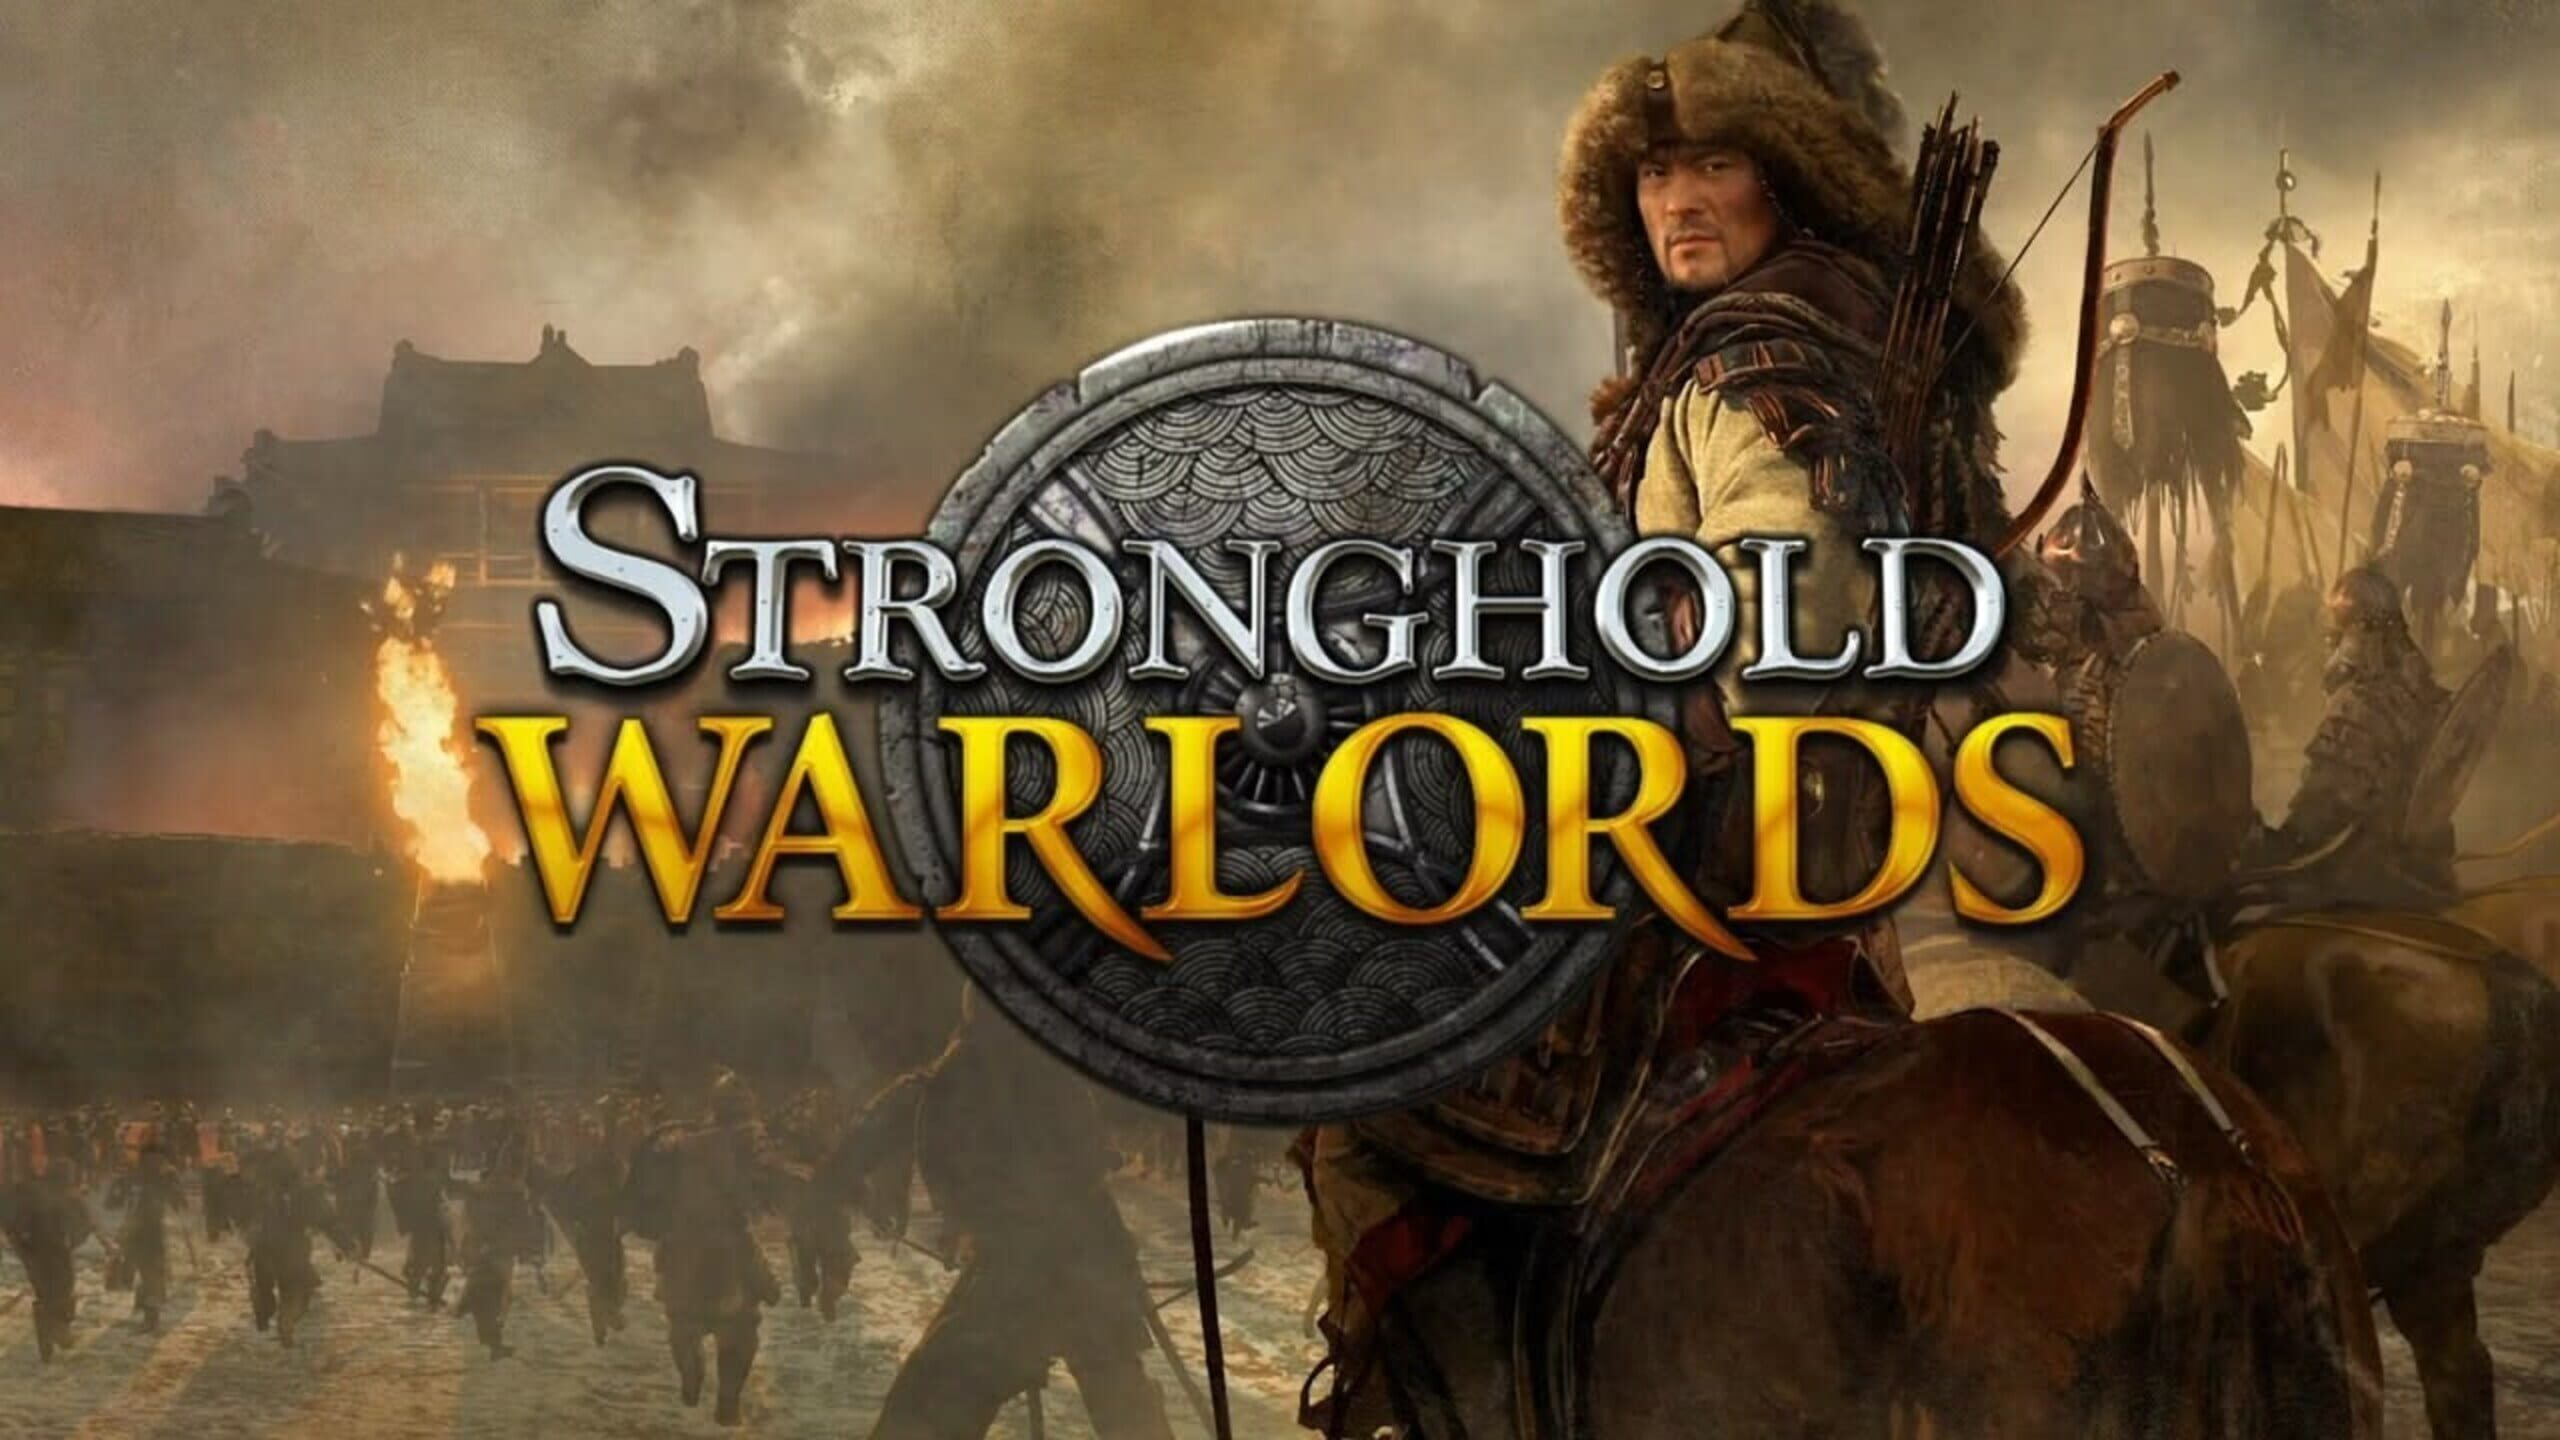 game cover art for Stronghold: Warlords